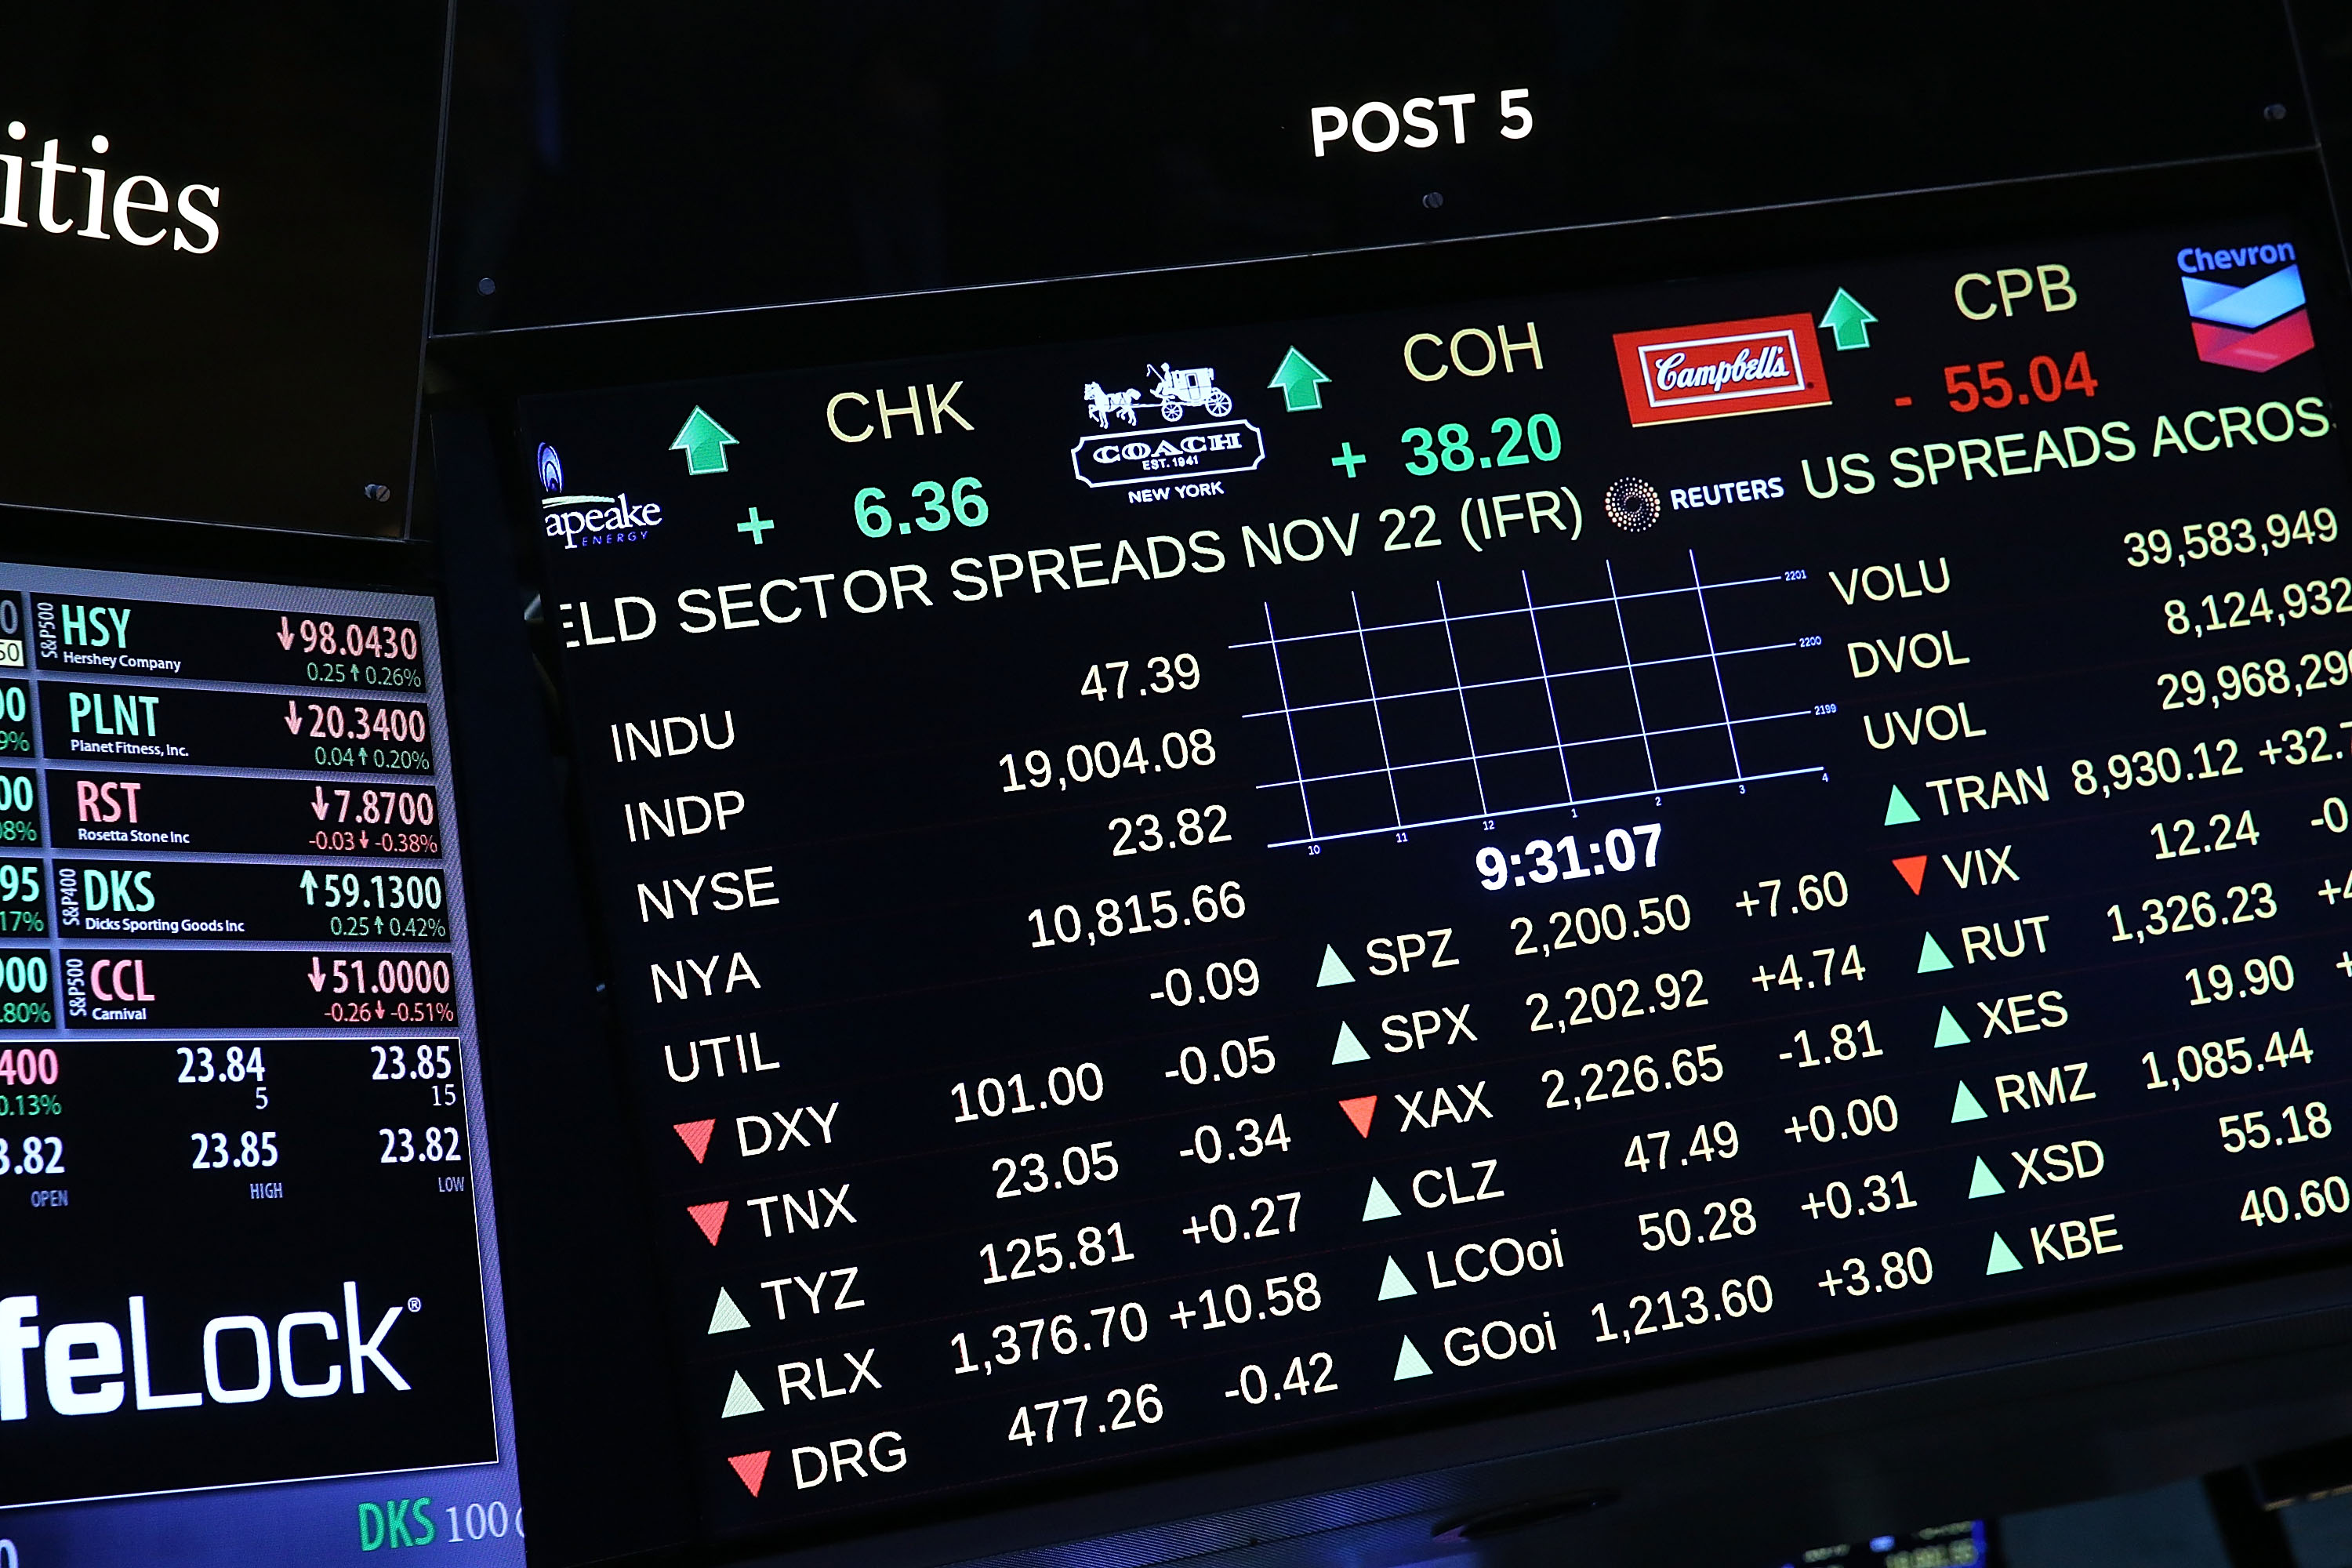 A trading monitor shows the market above 19,000 on the floor of the New York Stock Exchange (NYSE) on November 22, 2016 in New York City.